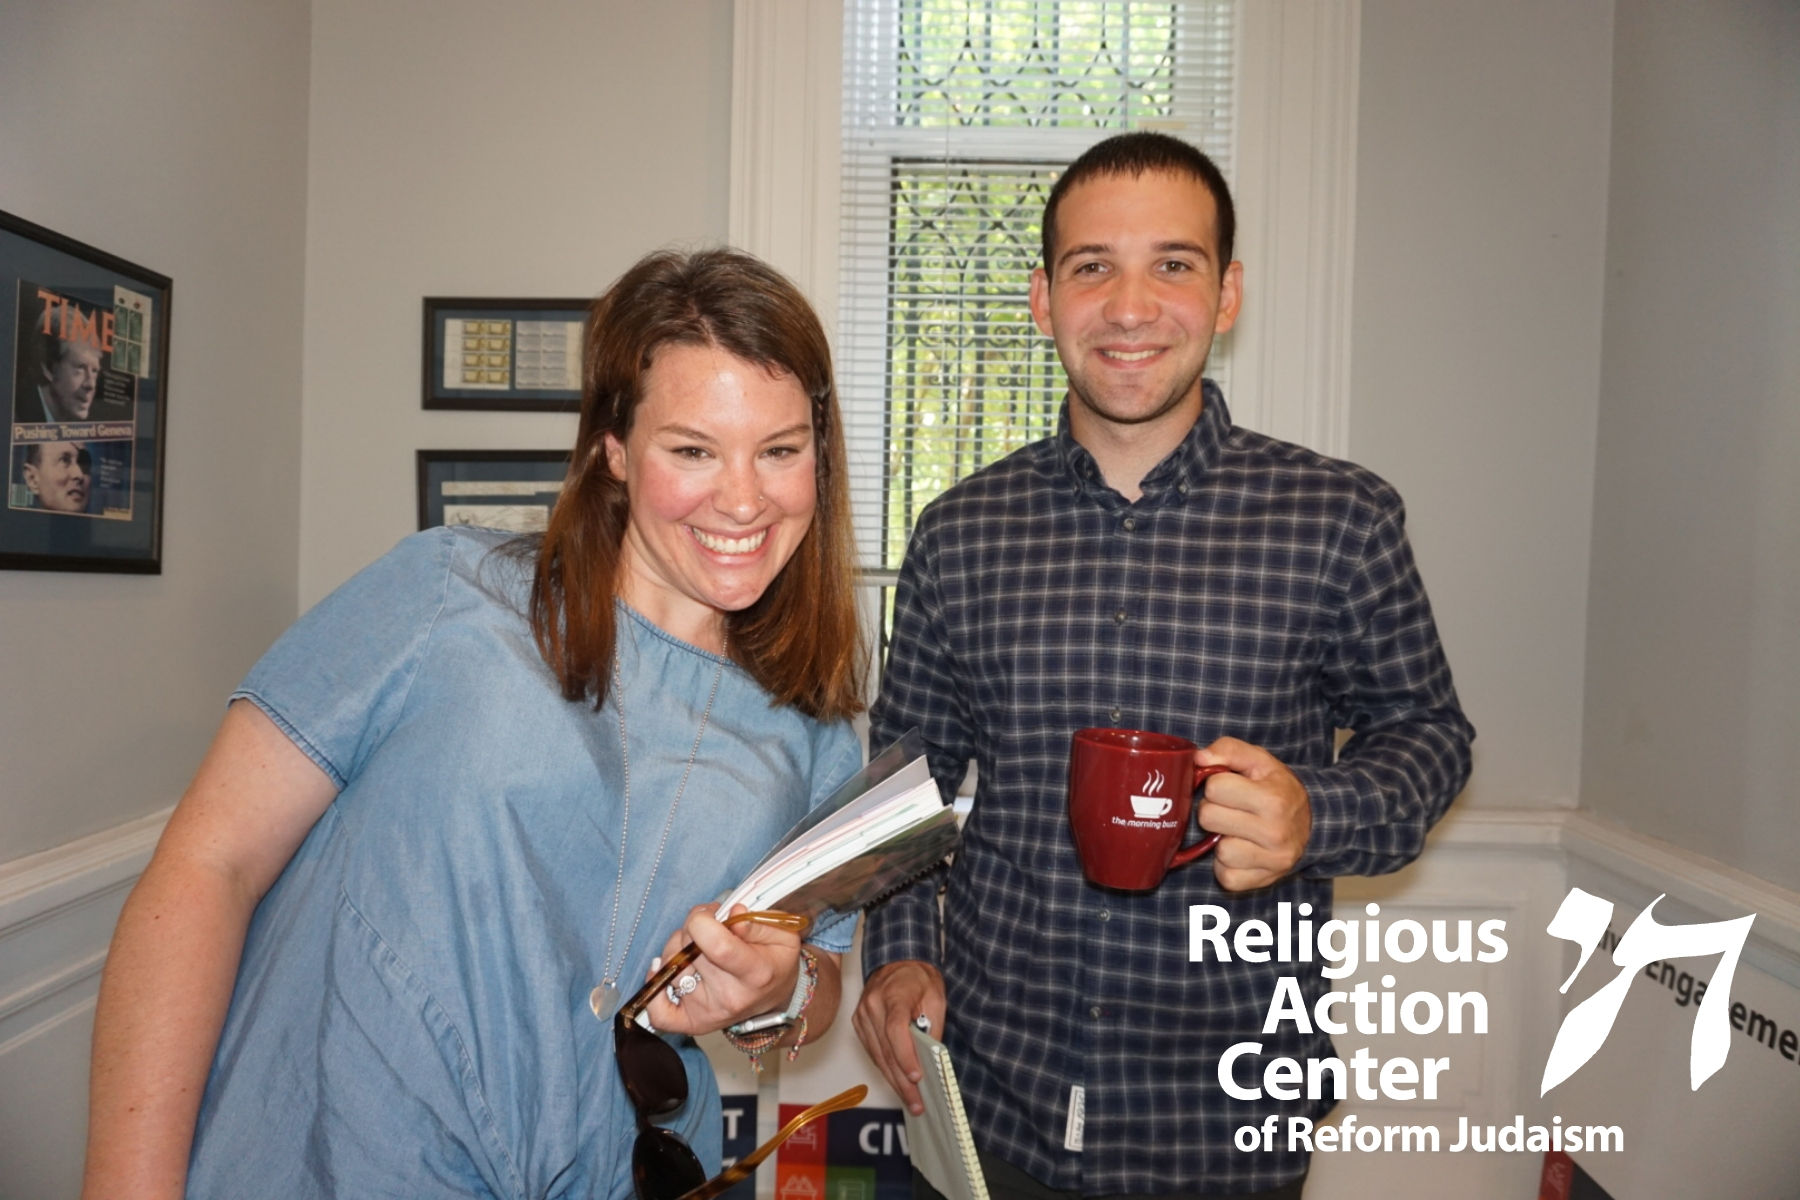 The author and his internship supervisor pose for a photo at the RAC office.